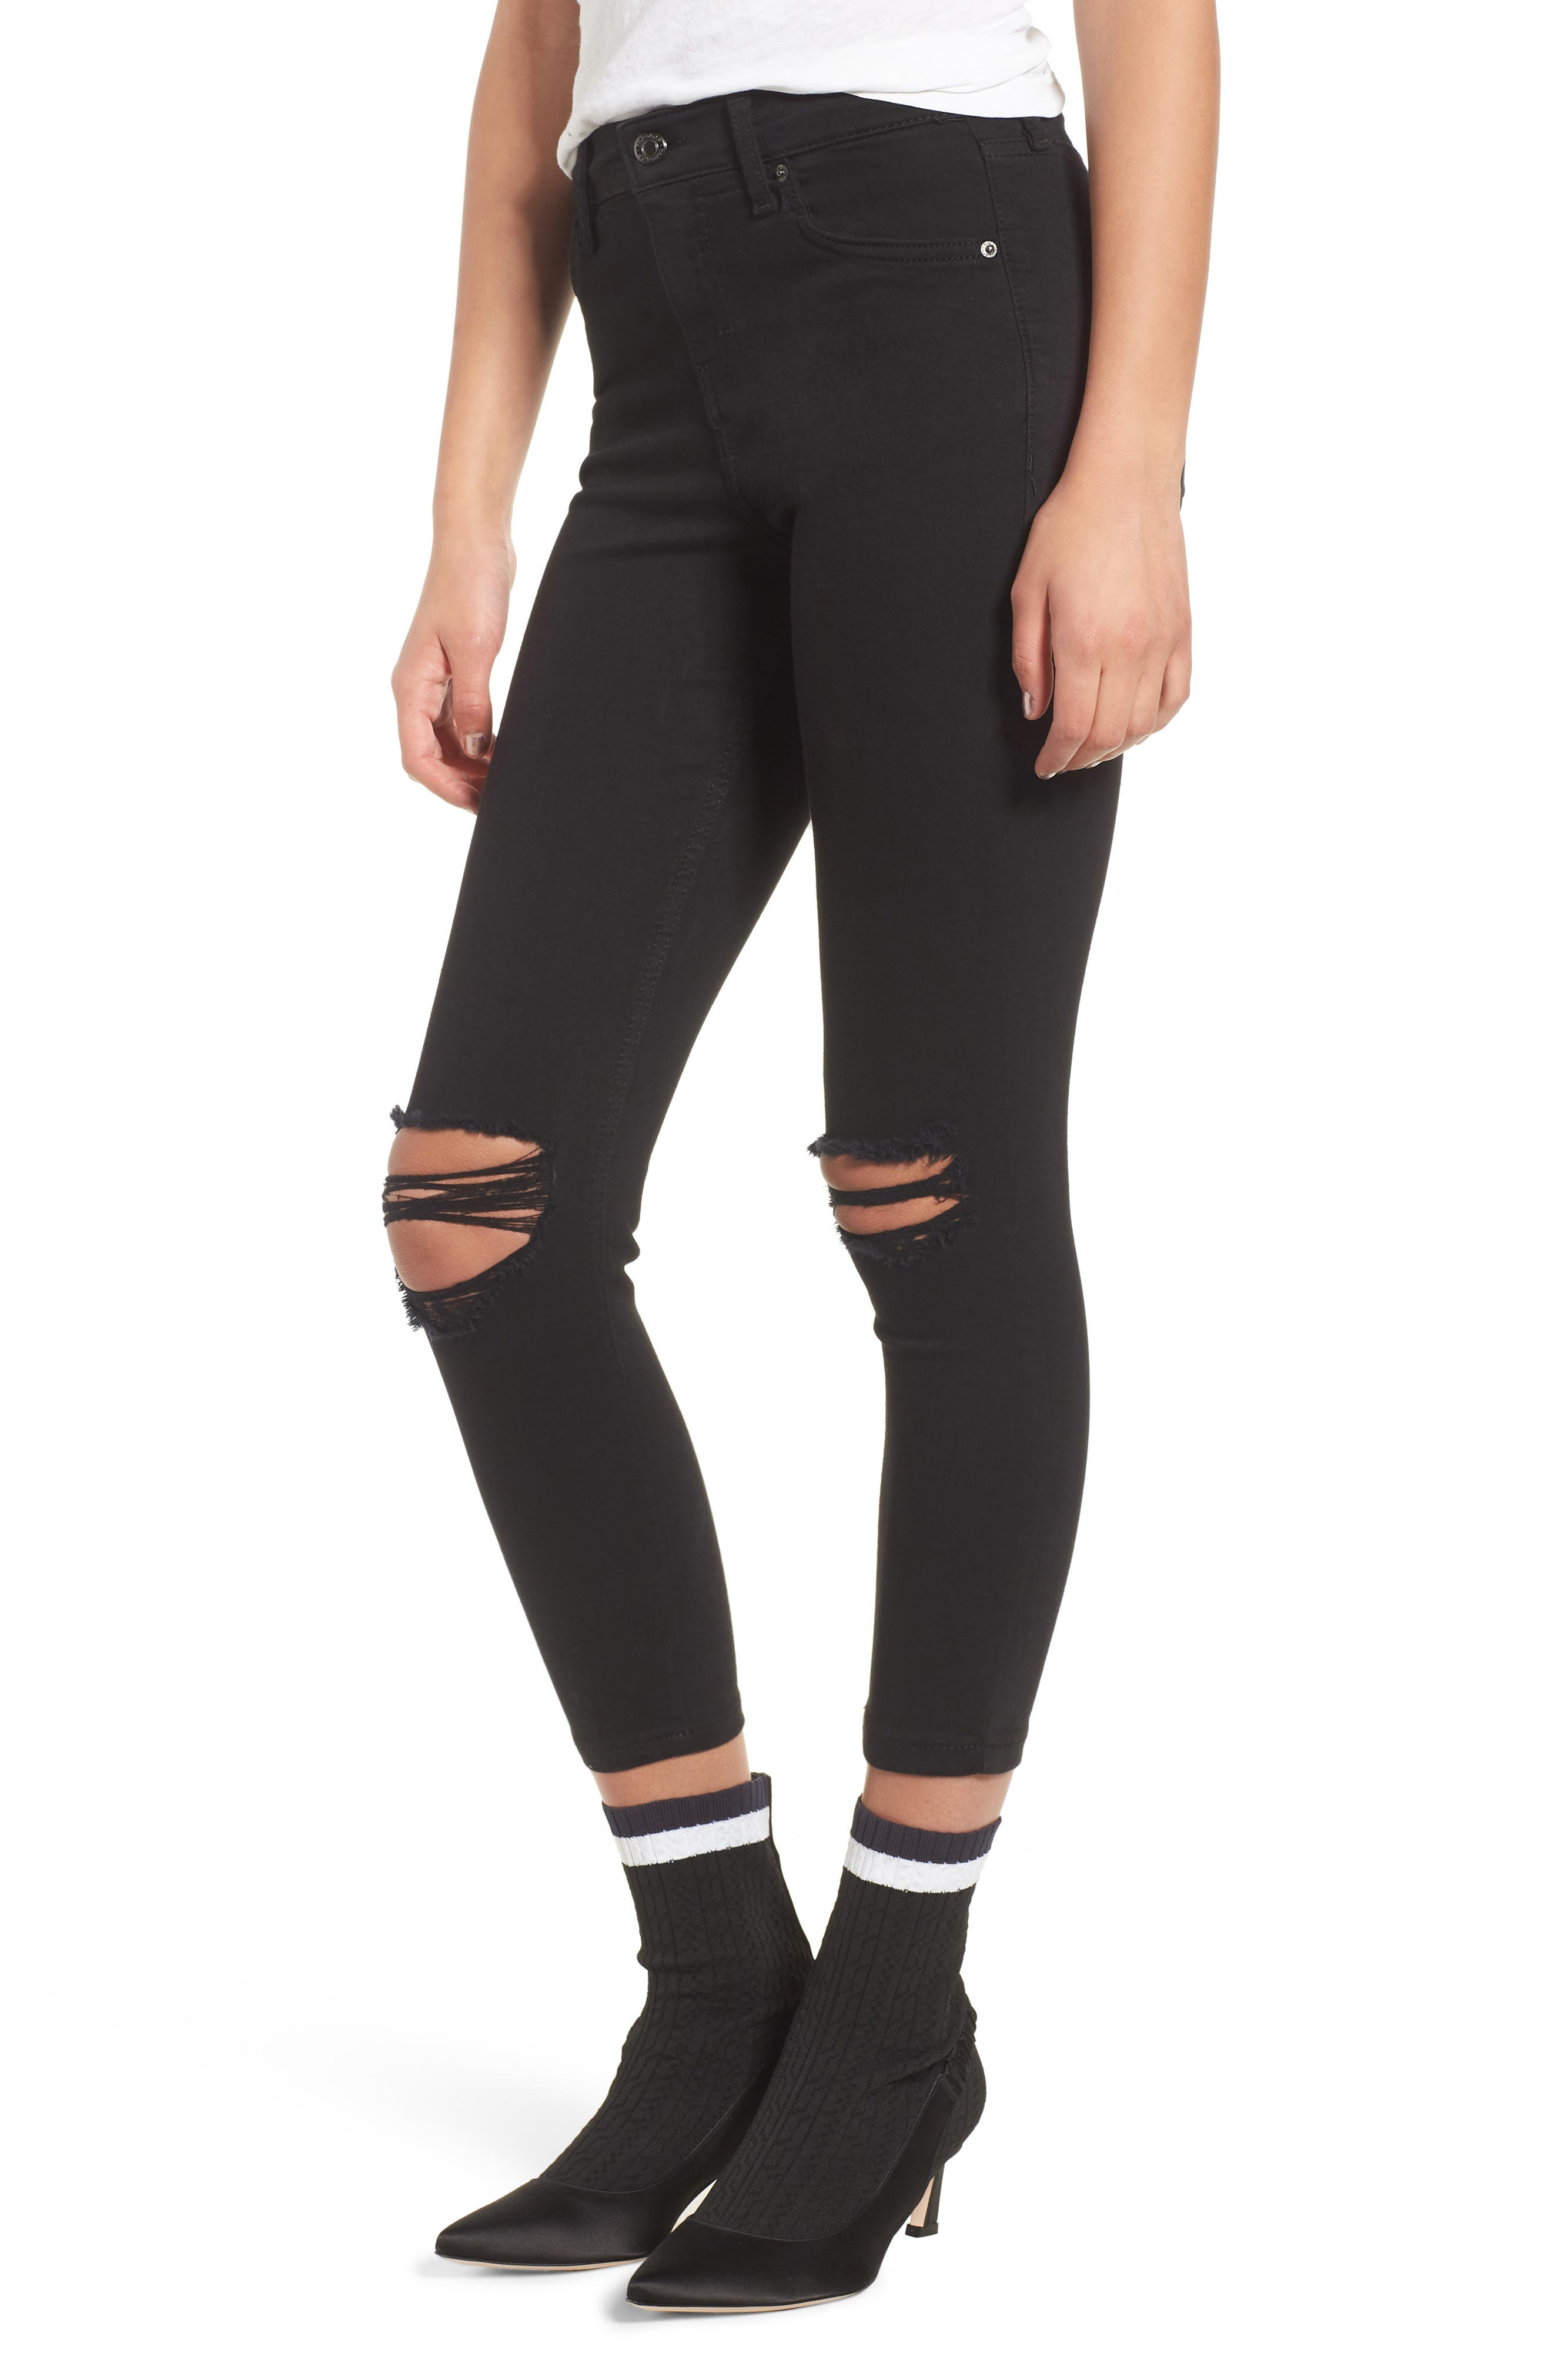 Jamie Ripped Jeans,                         Main,                         color, Black